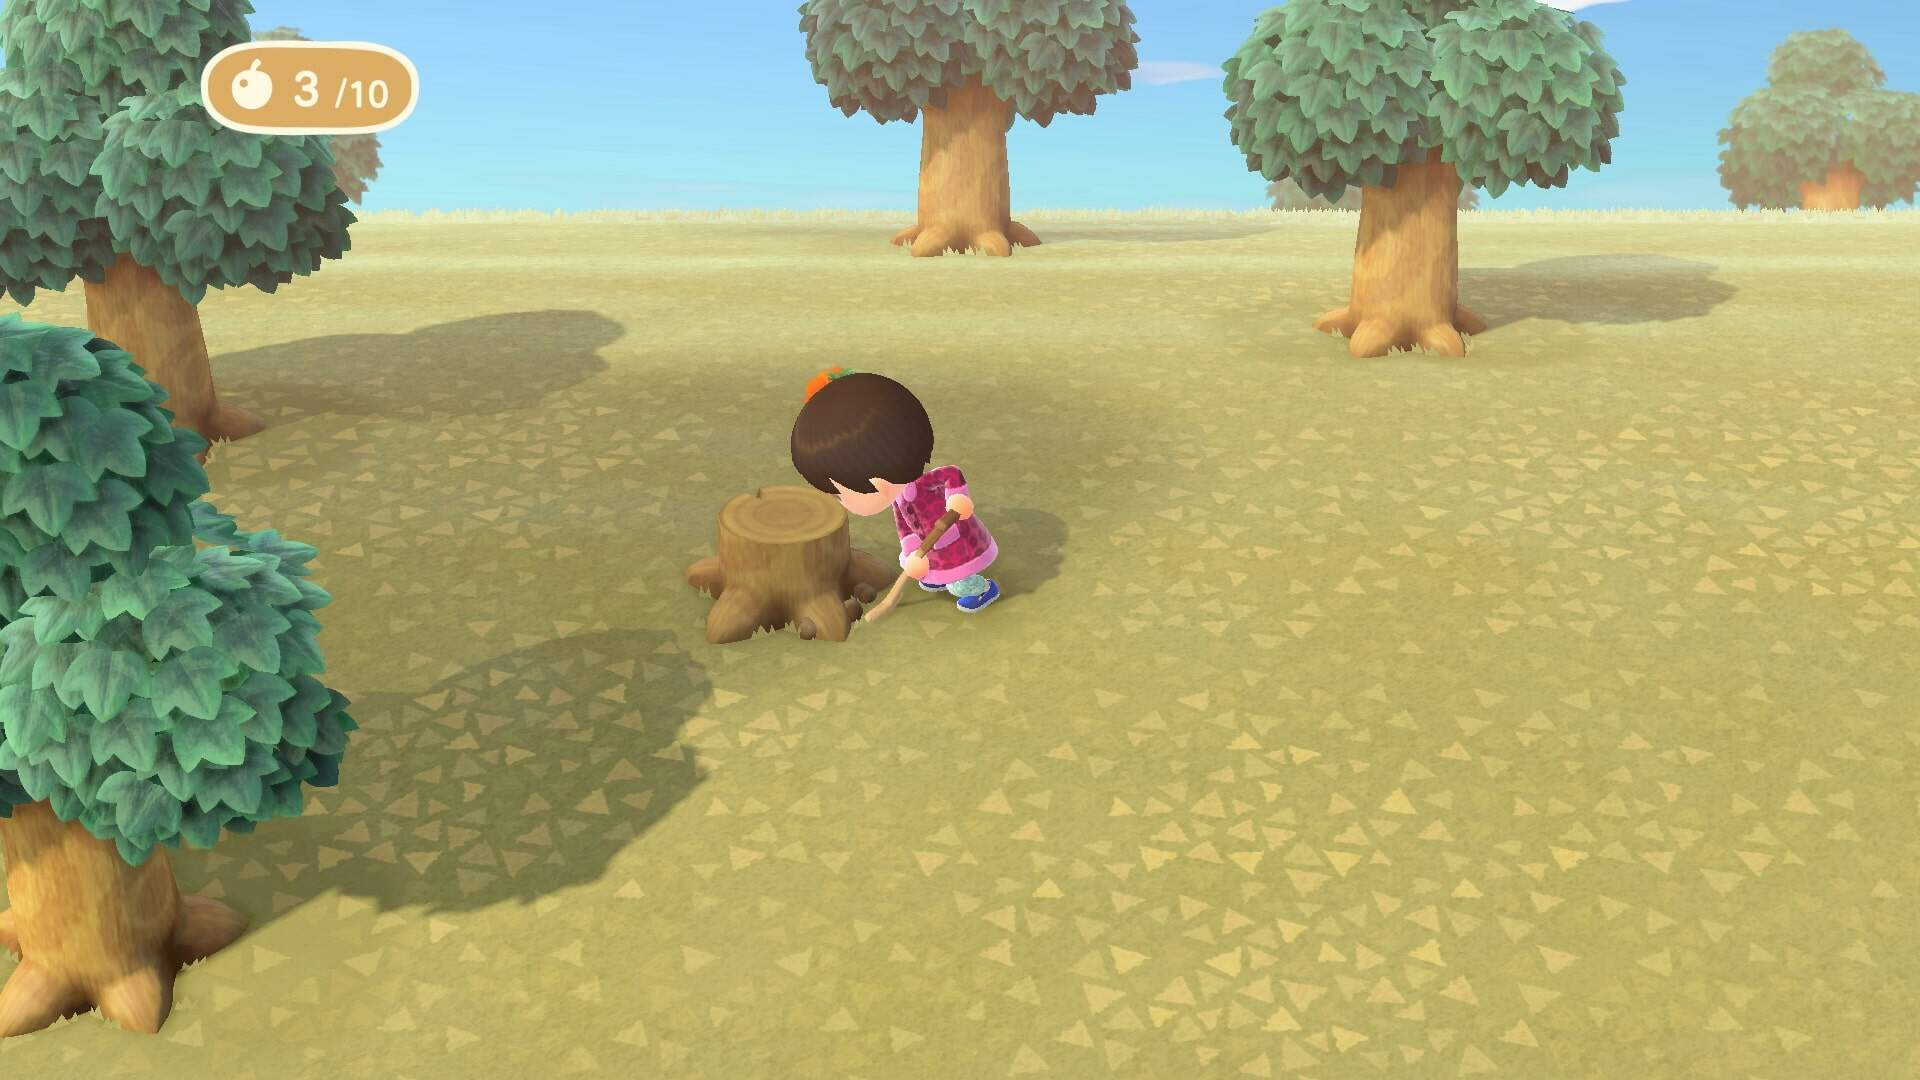 Animal Crossing New Horizons: How to Get Rid of Tree Stumps